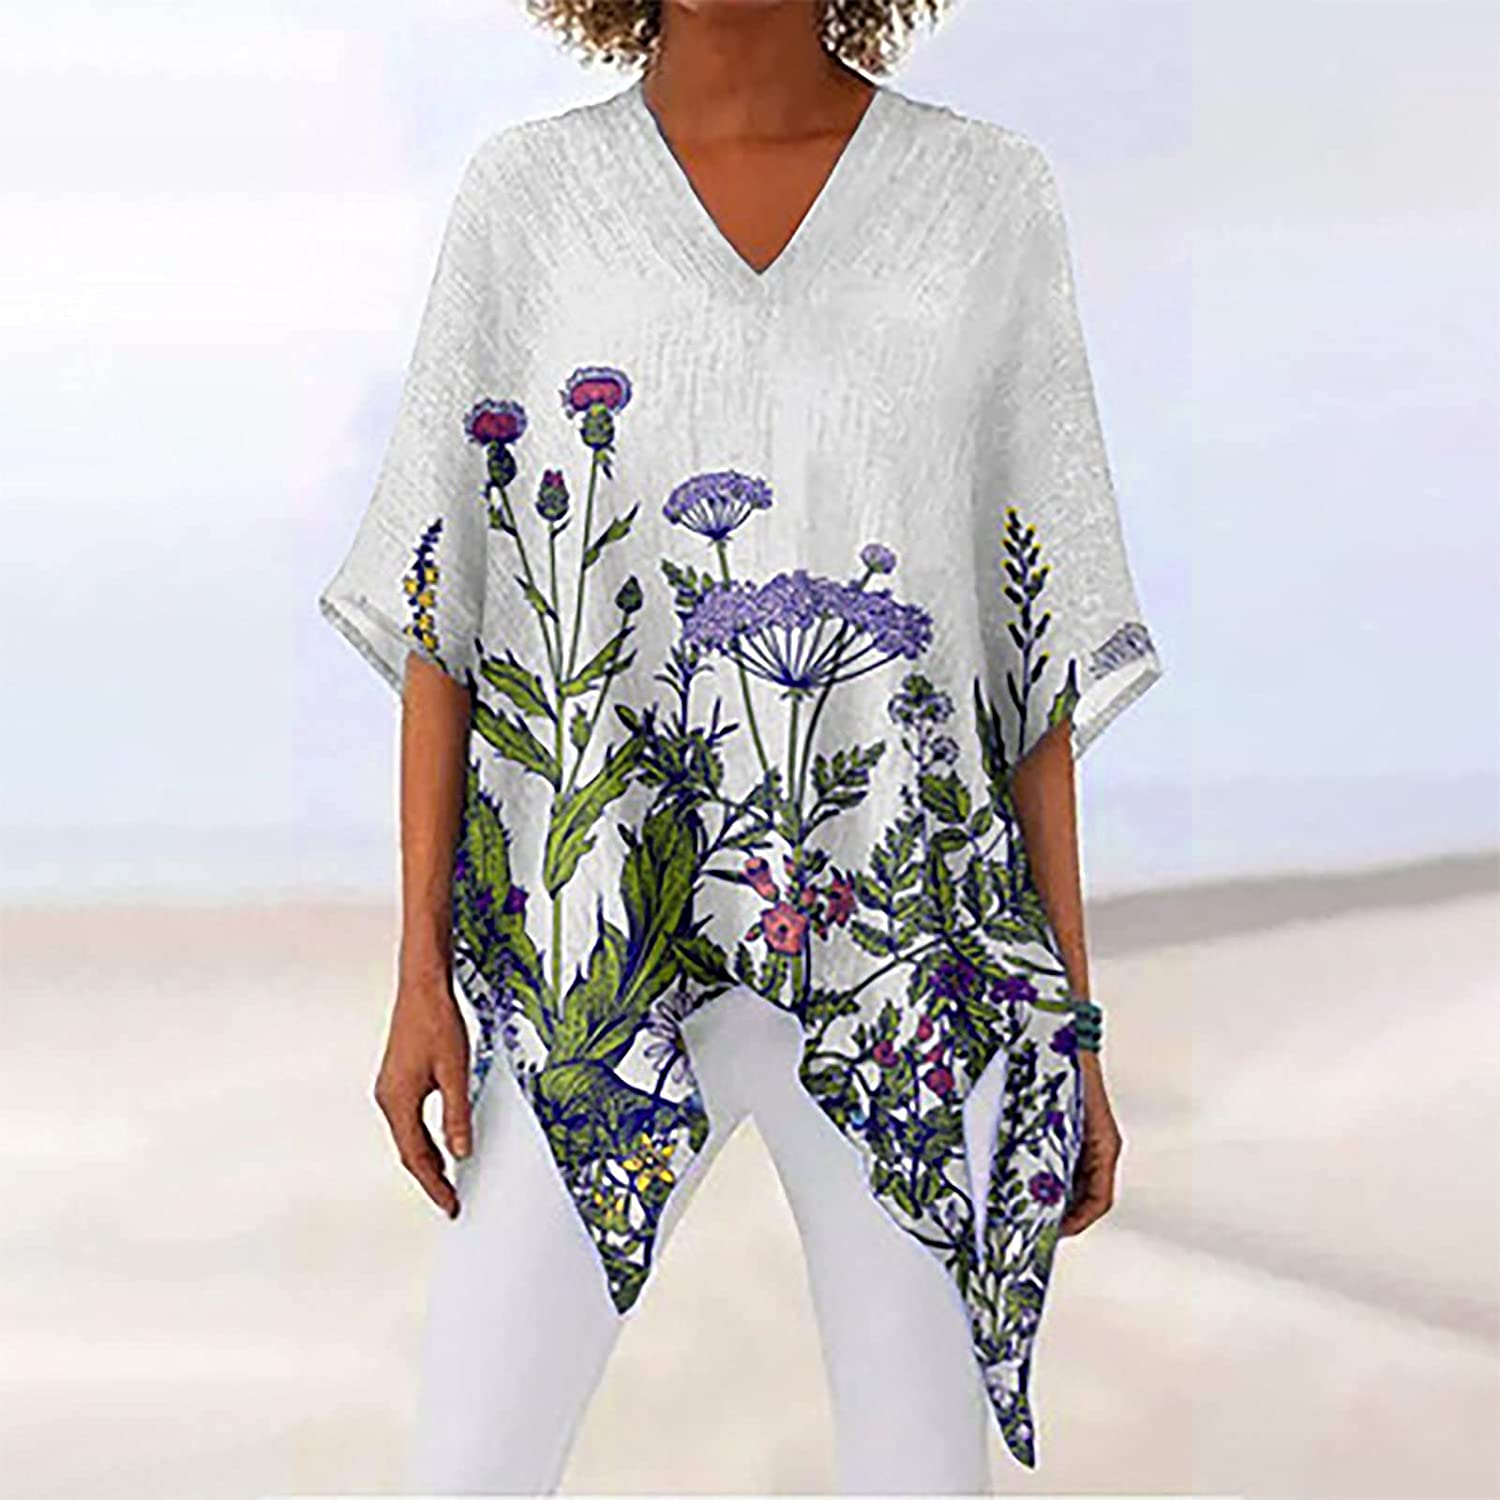 Women's Linen Plus Size Shirt Pullover Tunic Tops V Neck 3/4 Sleeve Floral Graphic Asymmetry Tees Blouse Top Tshirt